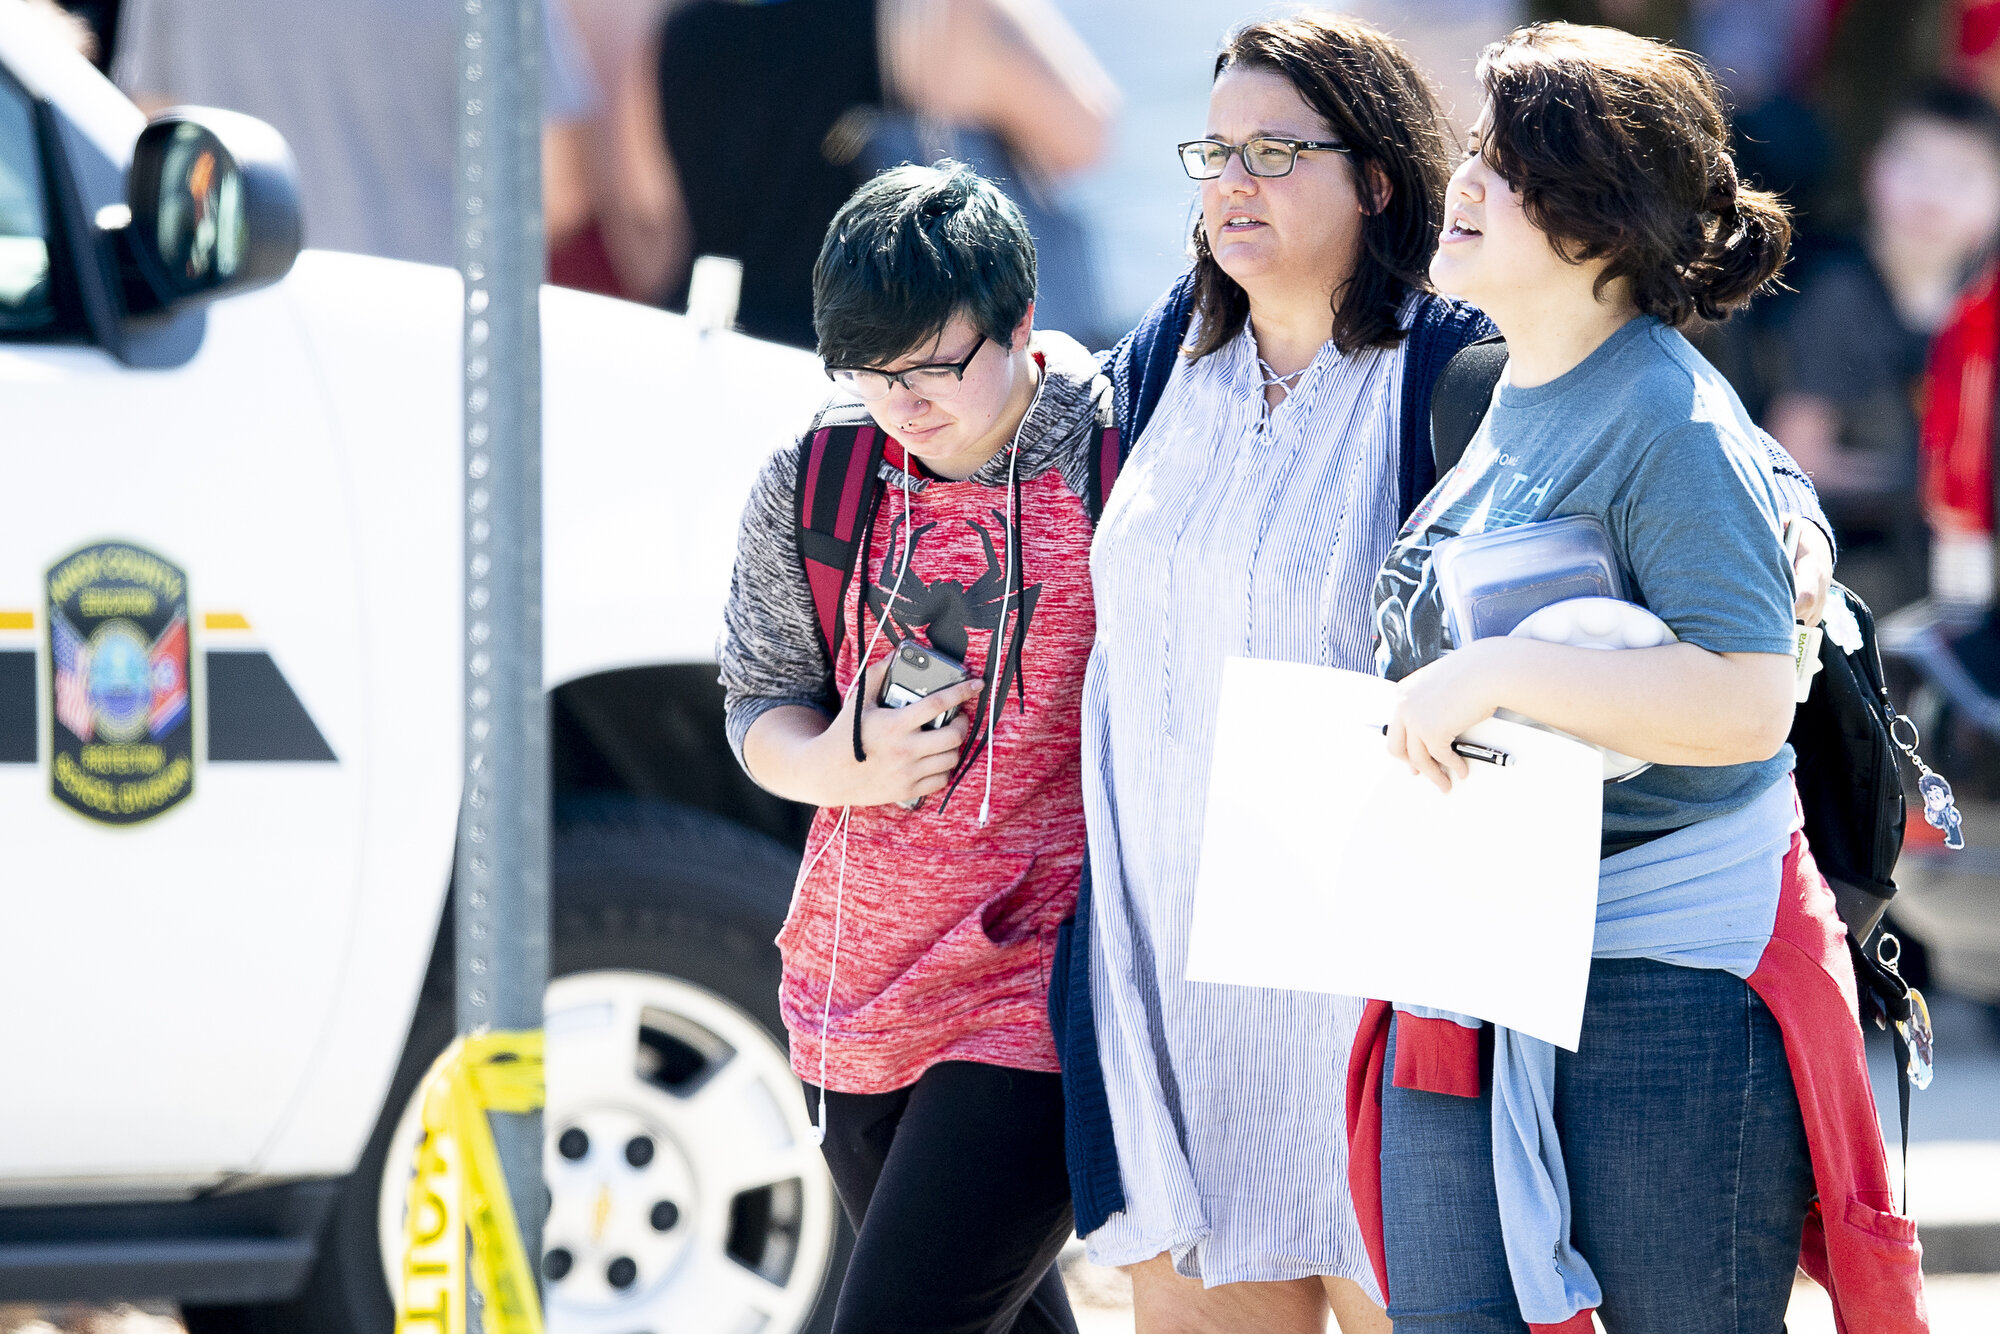 Student walk out of school with a loved one at Powell High School after unconfirmed reports of shots fired outside the school in Powell, Tennessee on Tuesday, September 3, 2019.